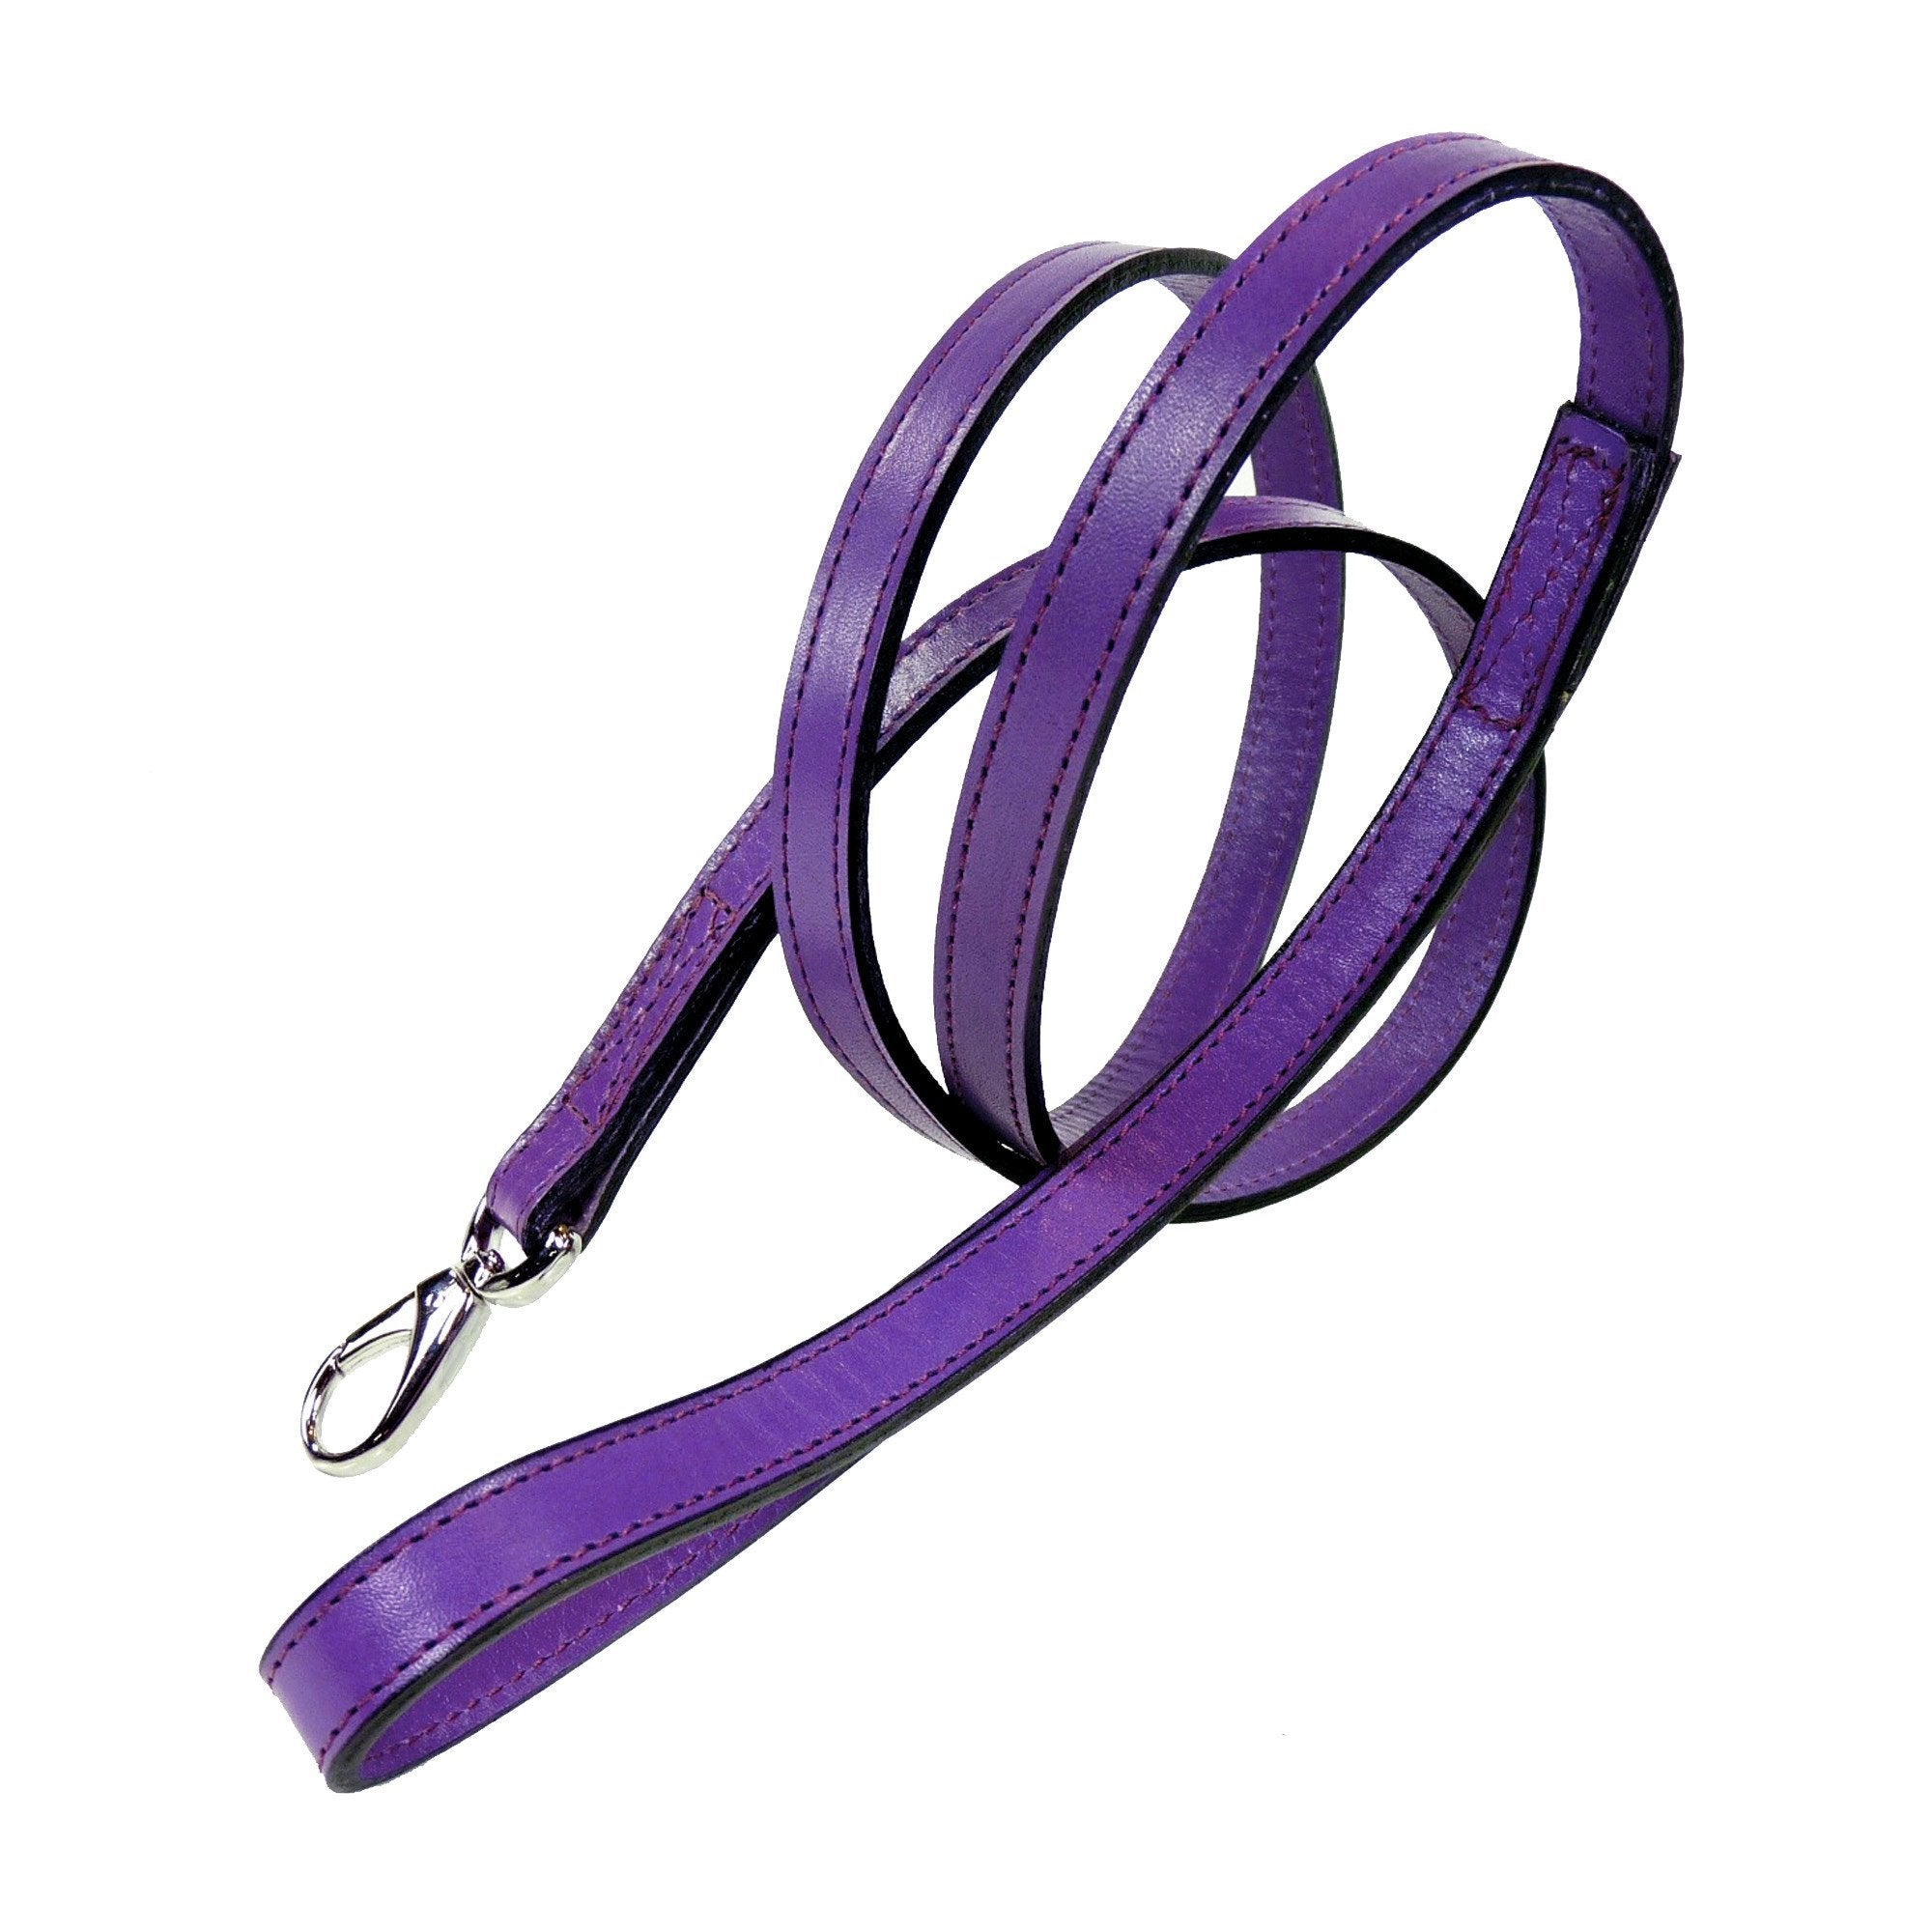 Hartman & Rose Dog Lead in Italian Grape Leather with Nickel Hardware